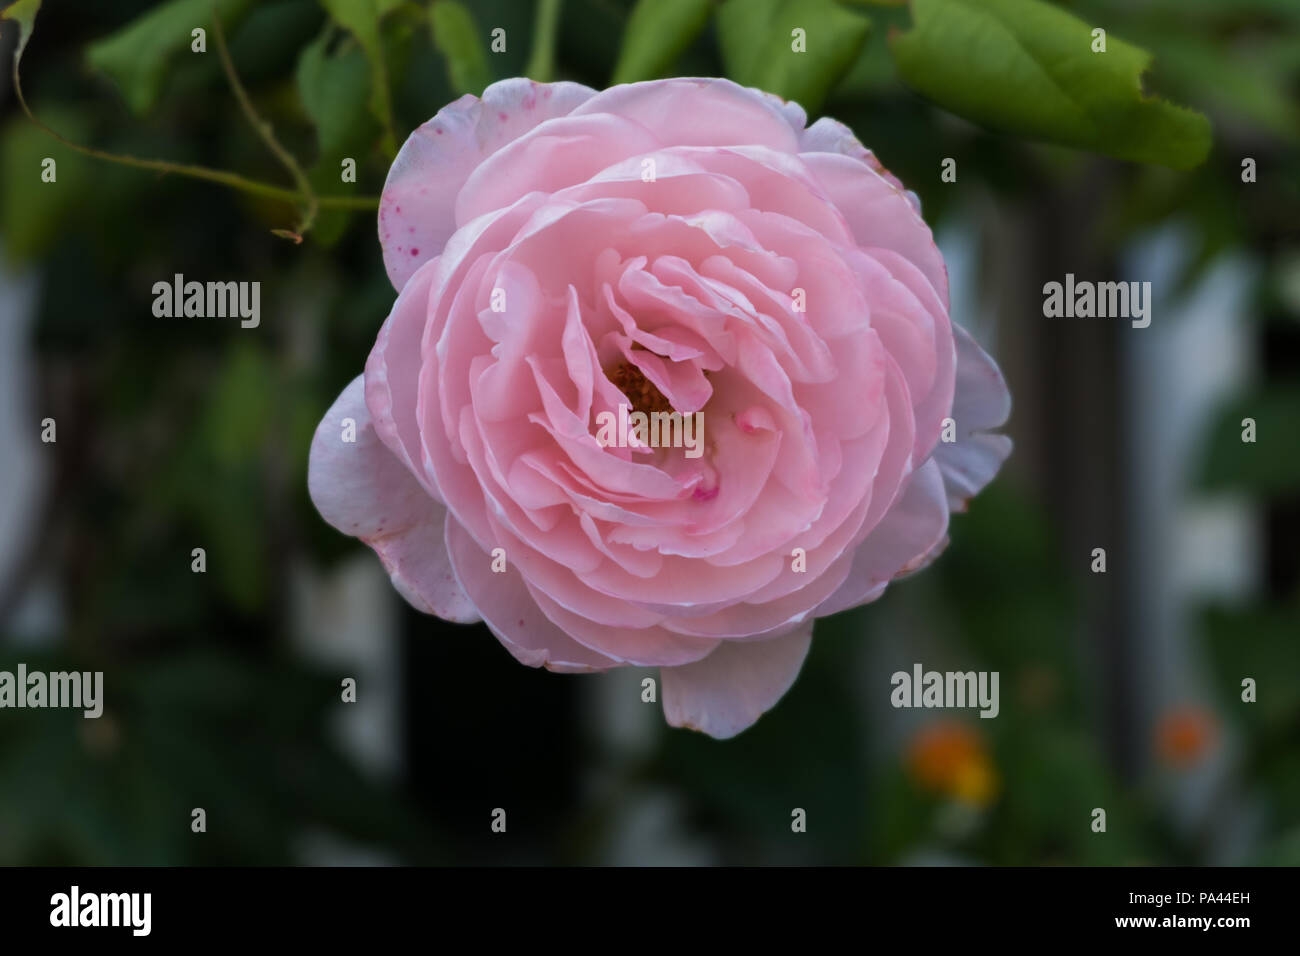 Pink Rose Flower Wallpaper Background Beautiful Image Of Nature